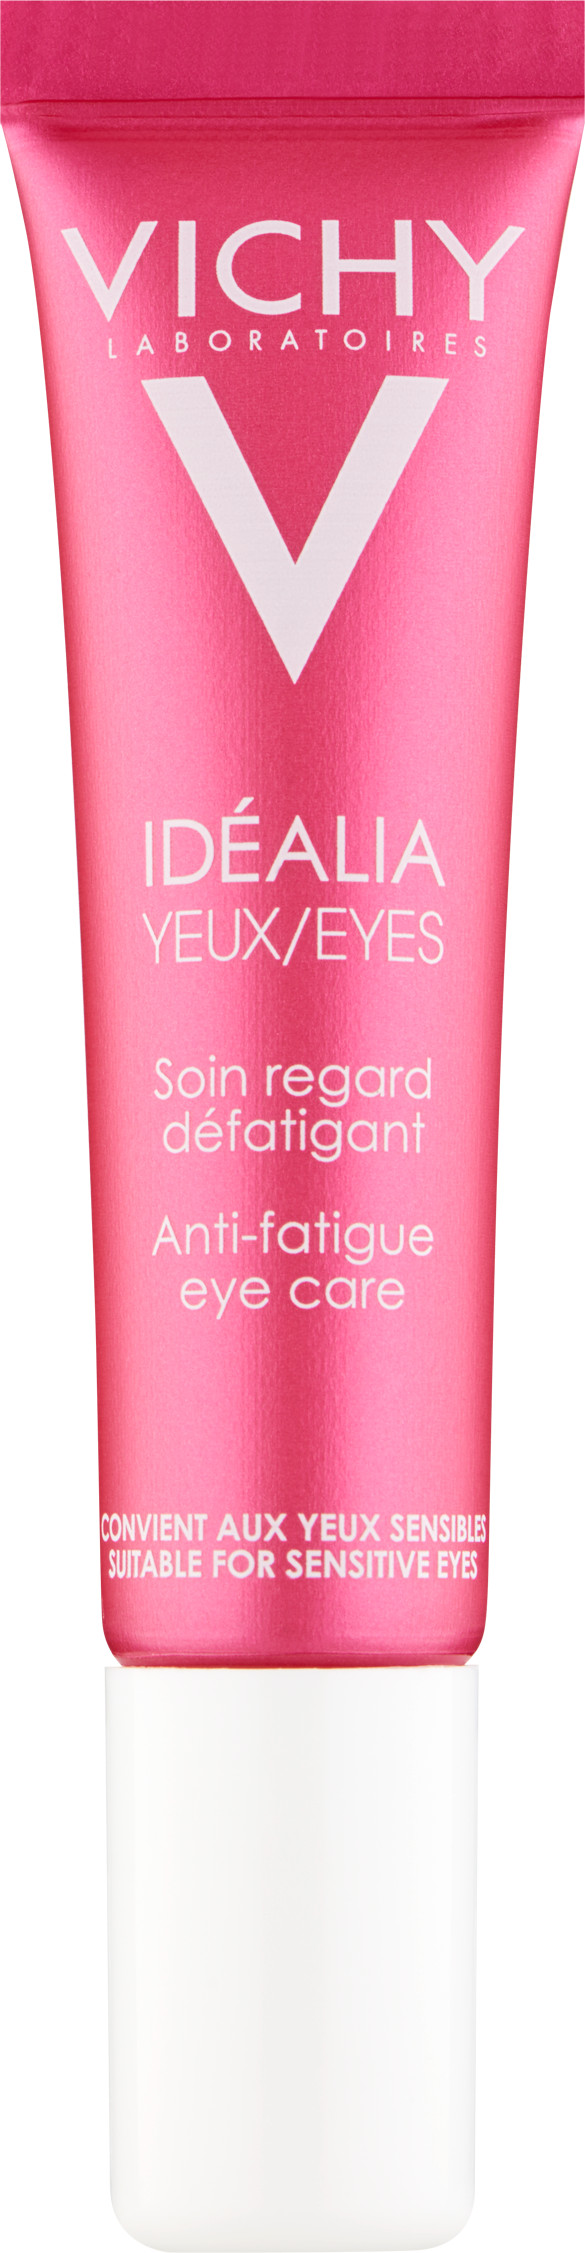 Vichy Idéalia Anti-Fatigue Eye Care